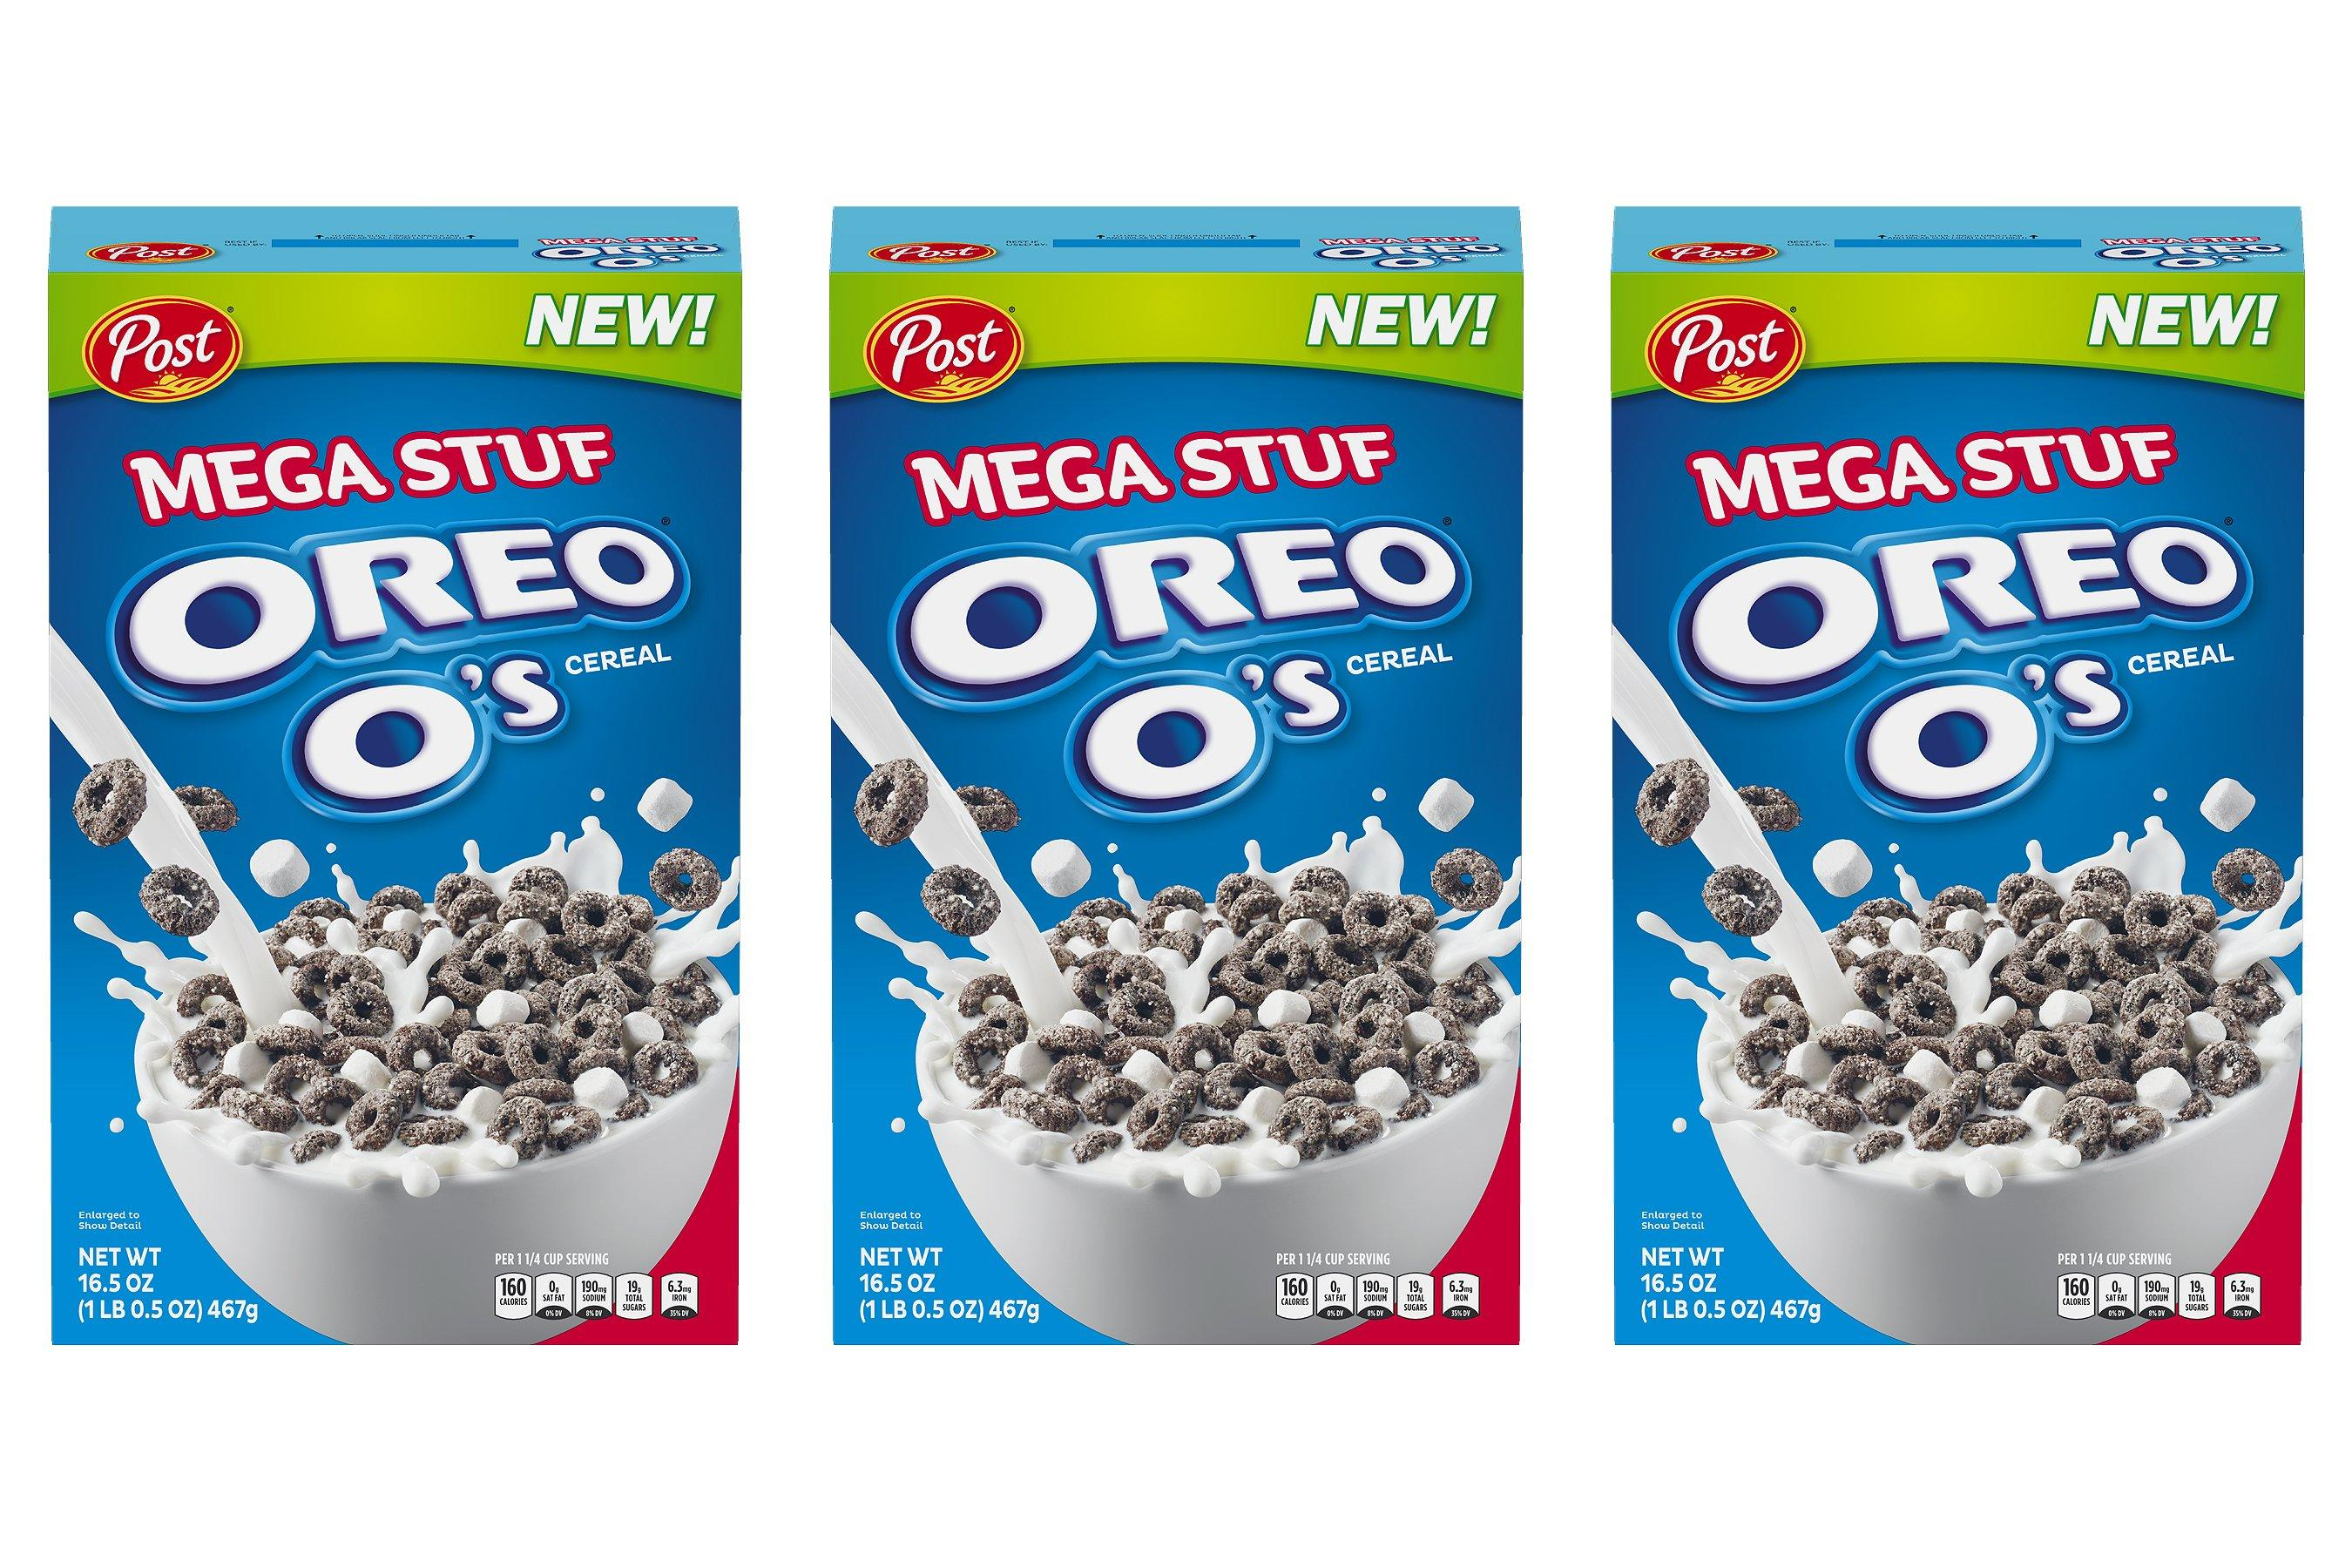 021dce585e86 There's a New 'Mega Stuf' Version of Oreo O's Cereal and It's Filled with  Marshmallows